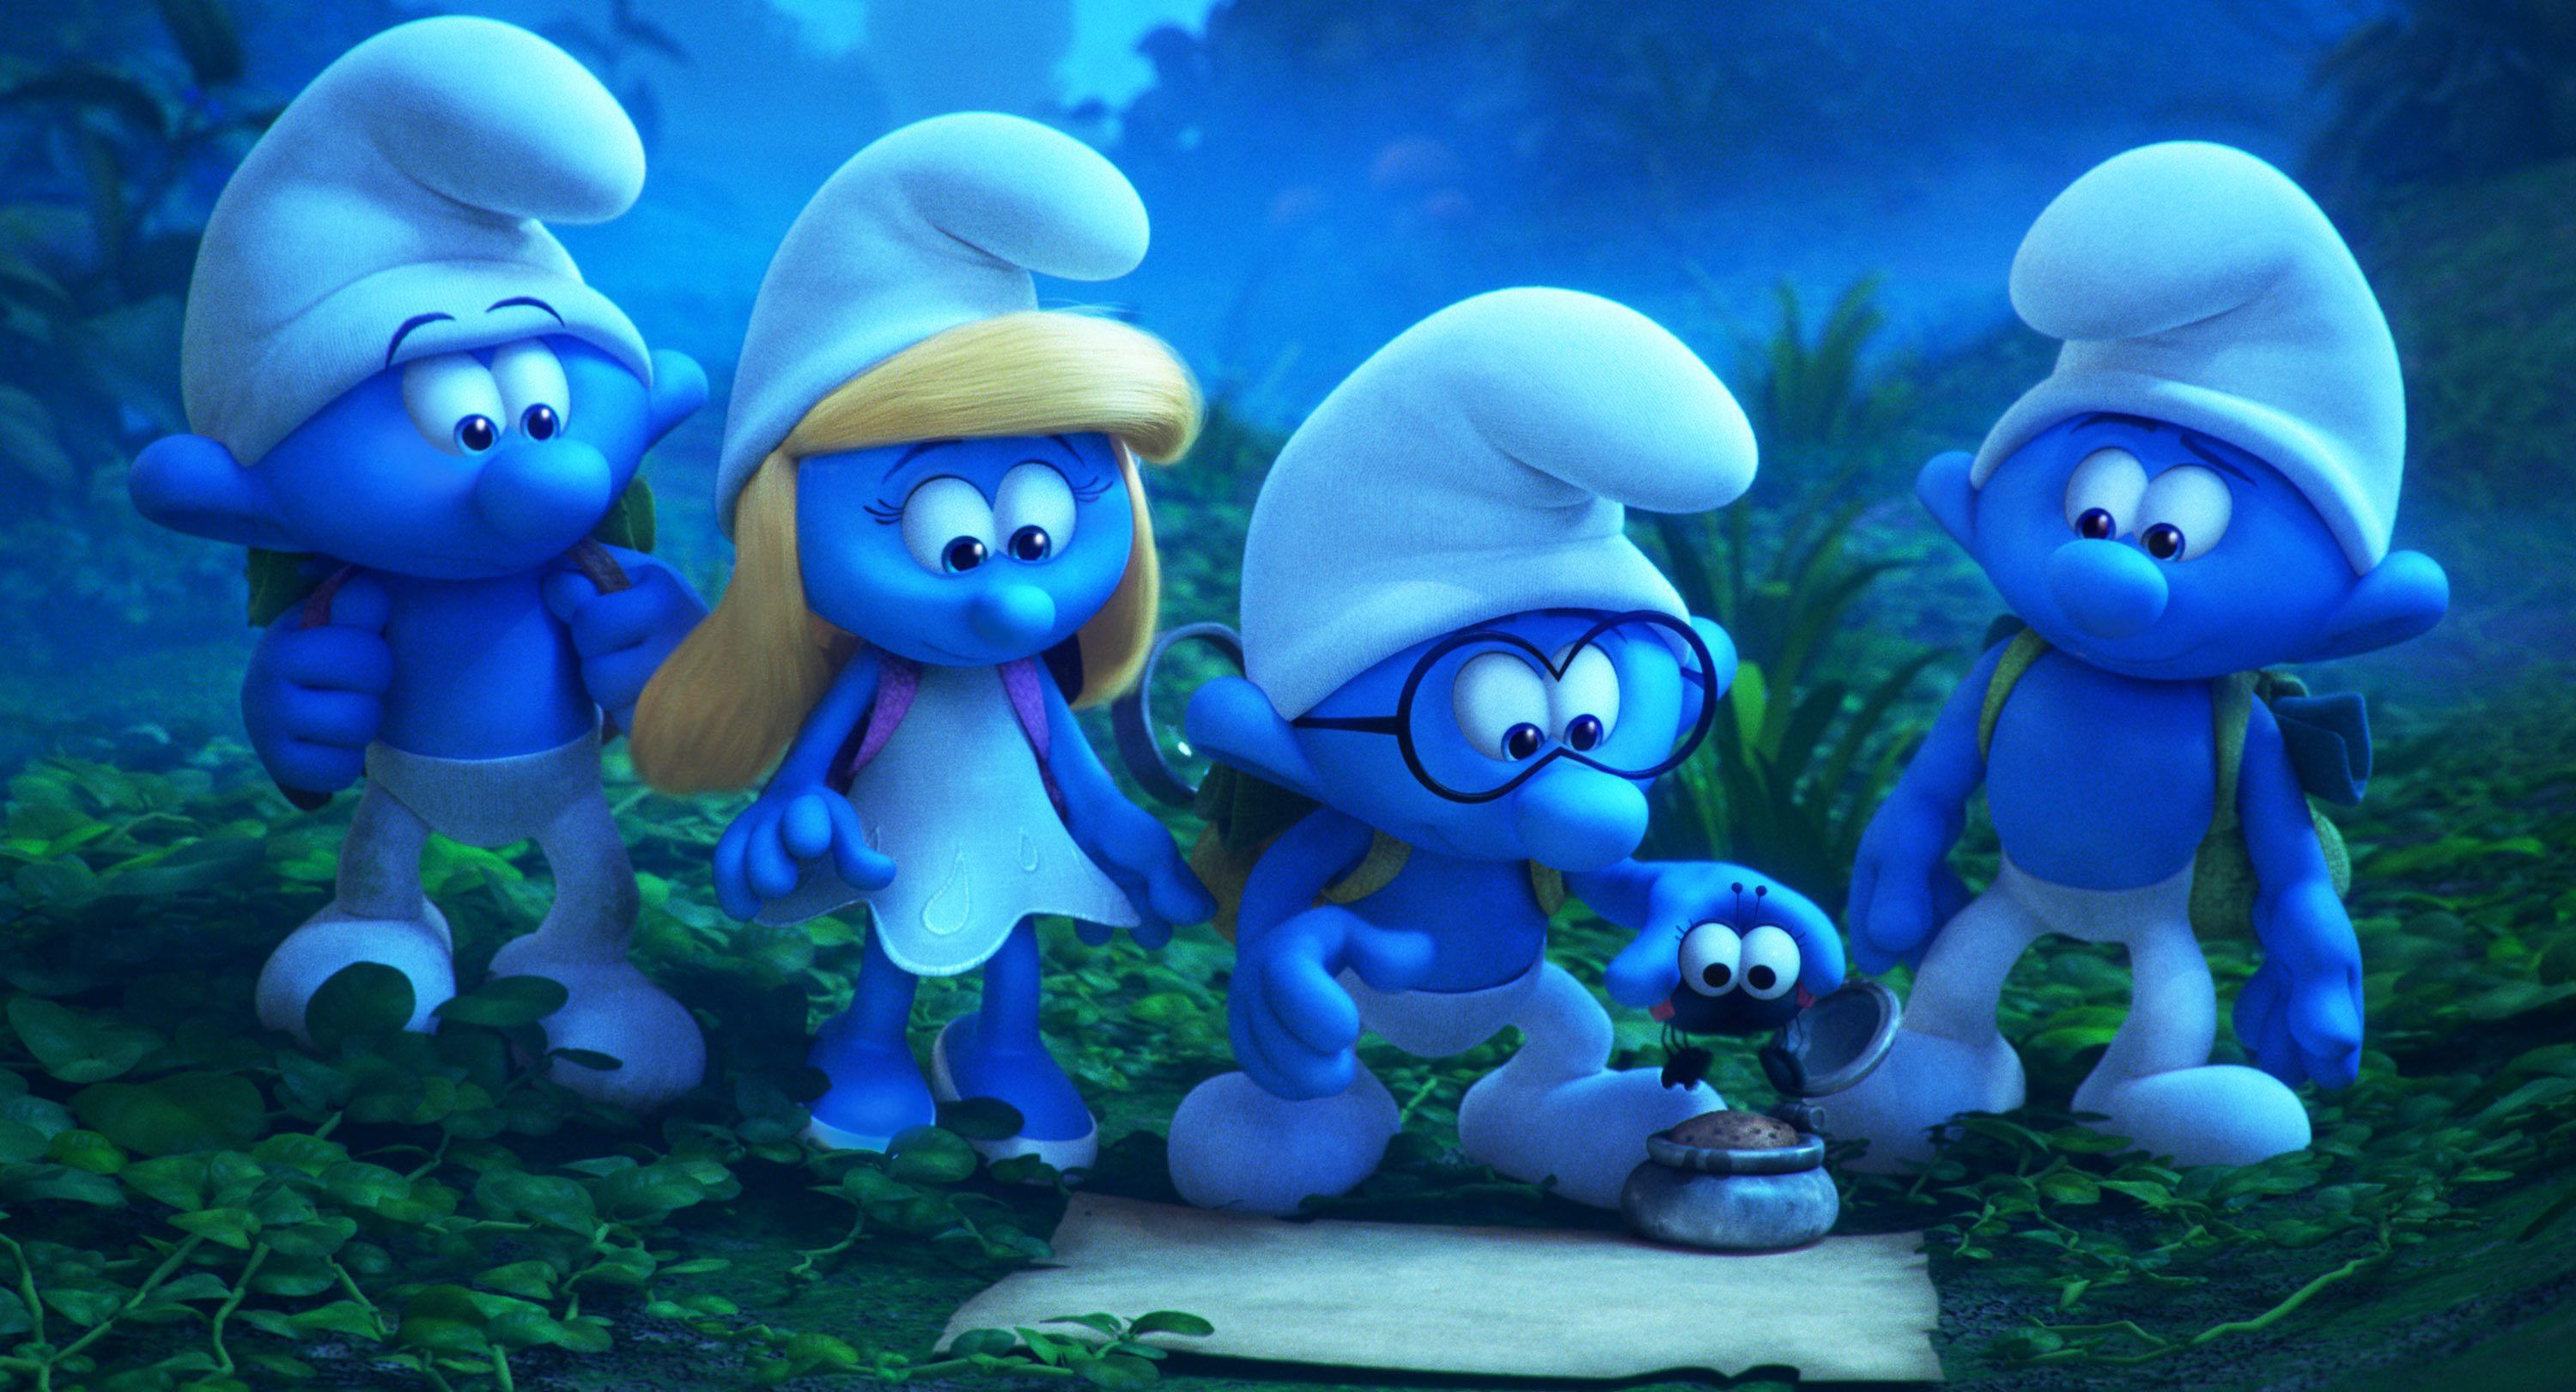 Nickelodeon Orders New Smurfs Series For 2021 Fame10